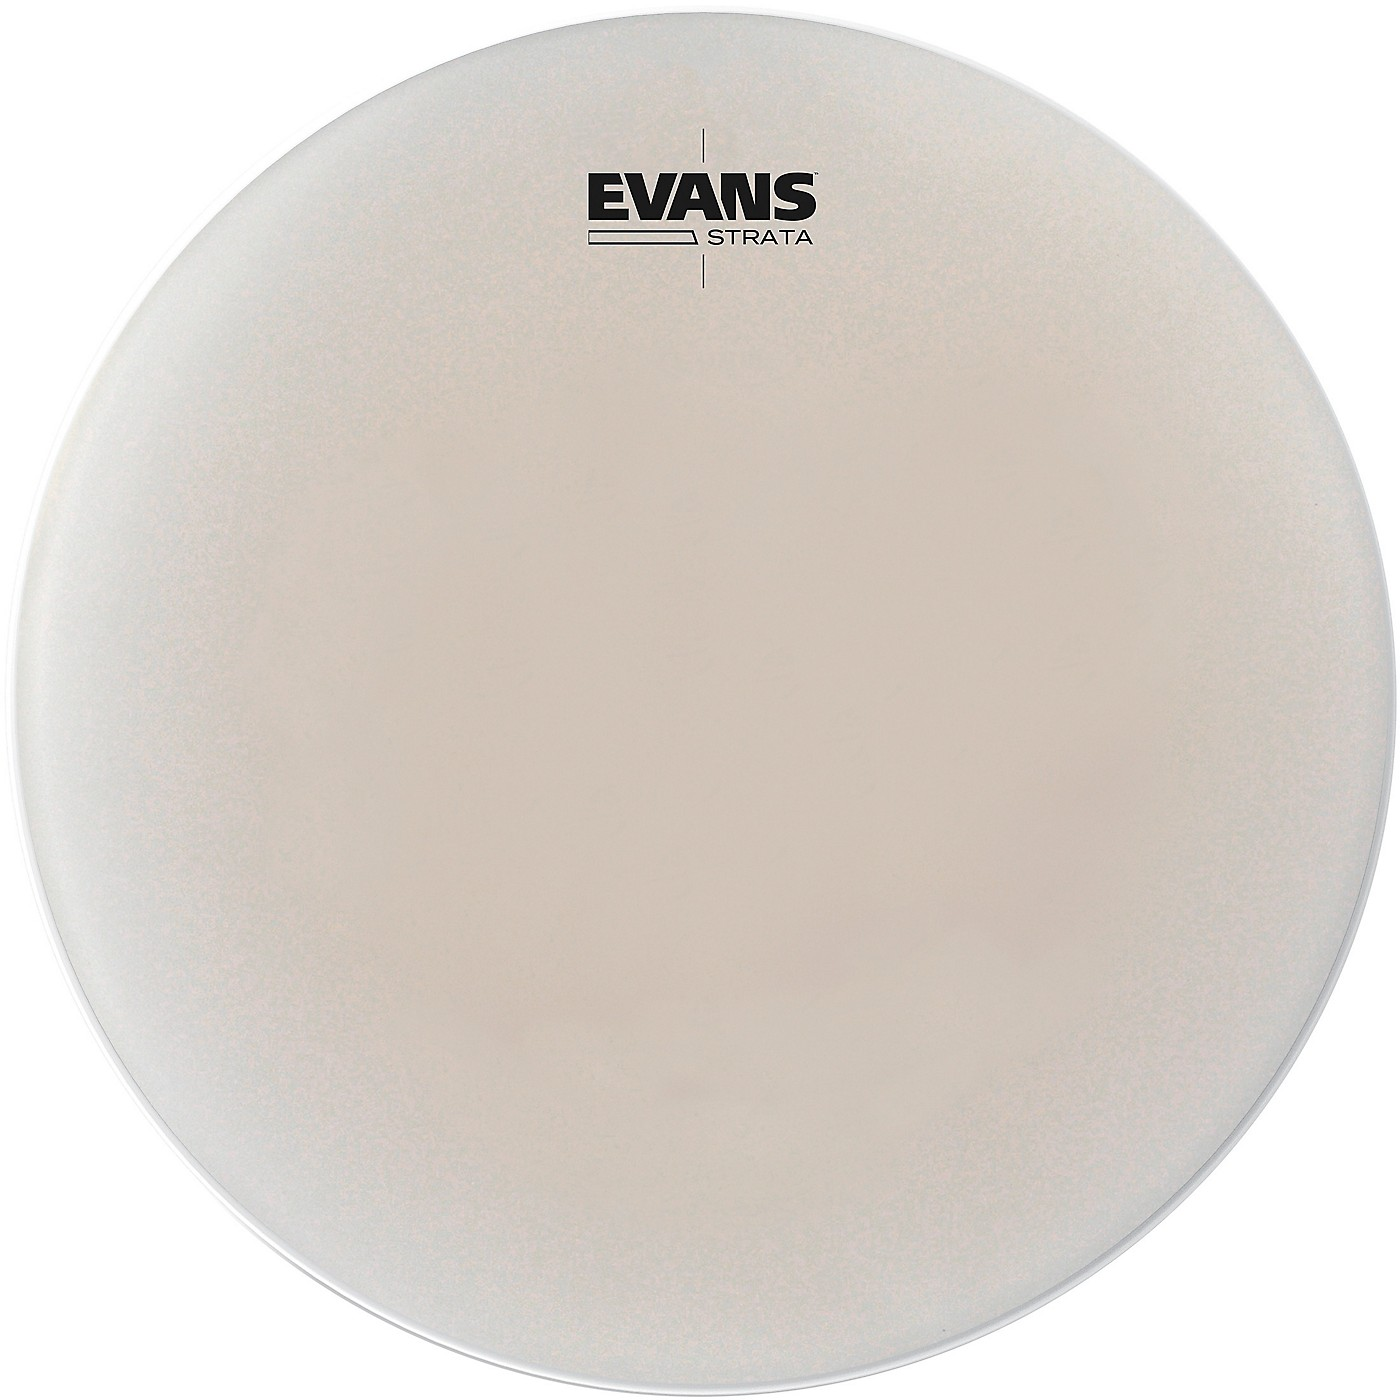 Evans Strata Series Timpani Drum Head thumbnail